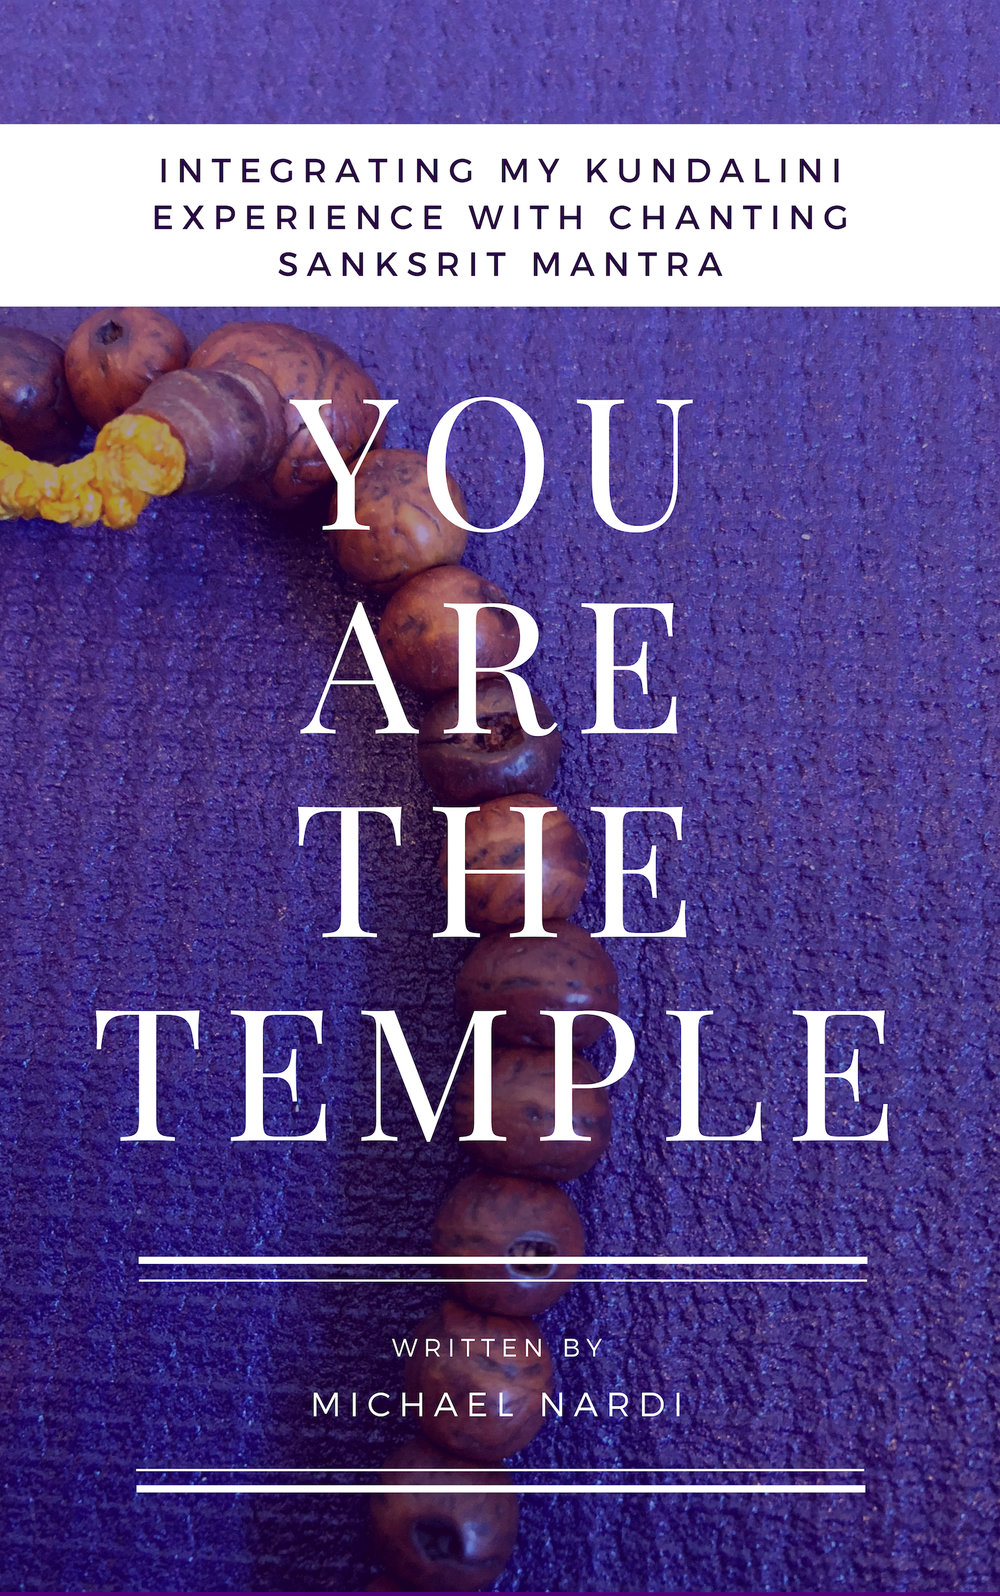 YOU ARE THE TEMPLE: INTEGRATING MY KUNDALINI EXPERIENCE WITH CHANTING SANSKRIT MANTRA -